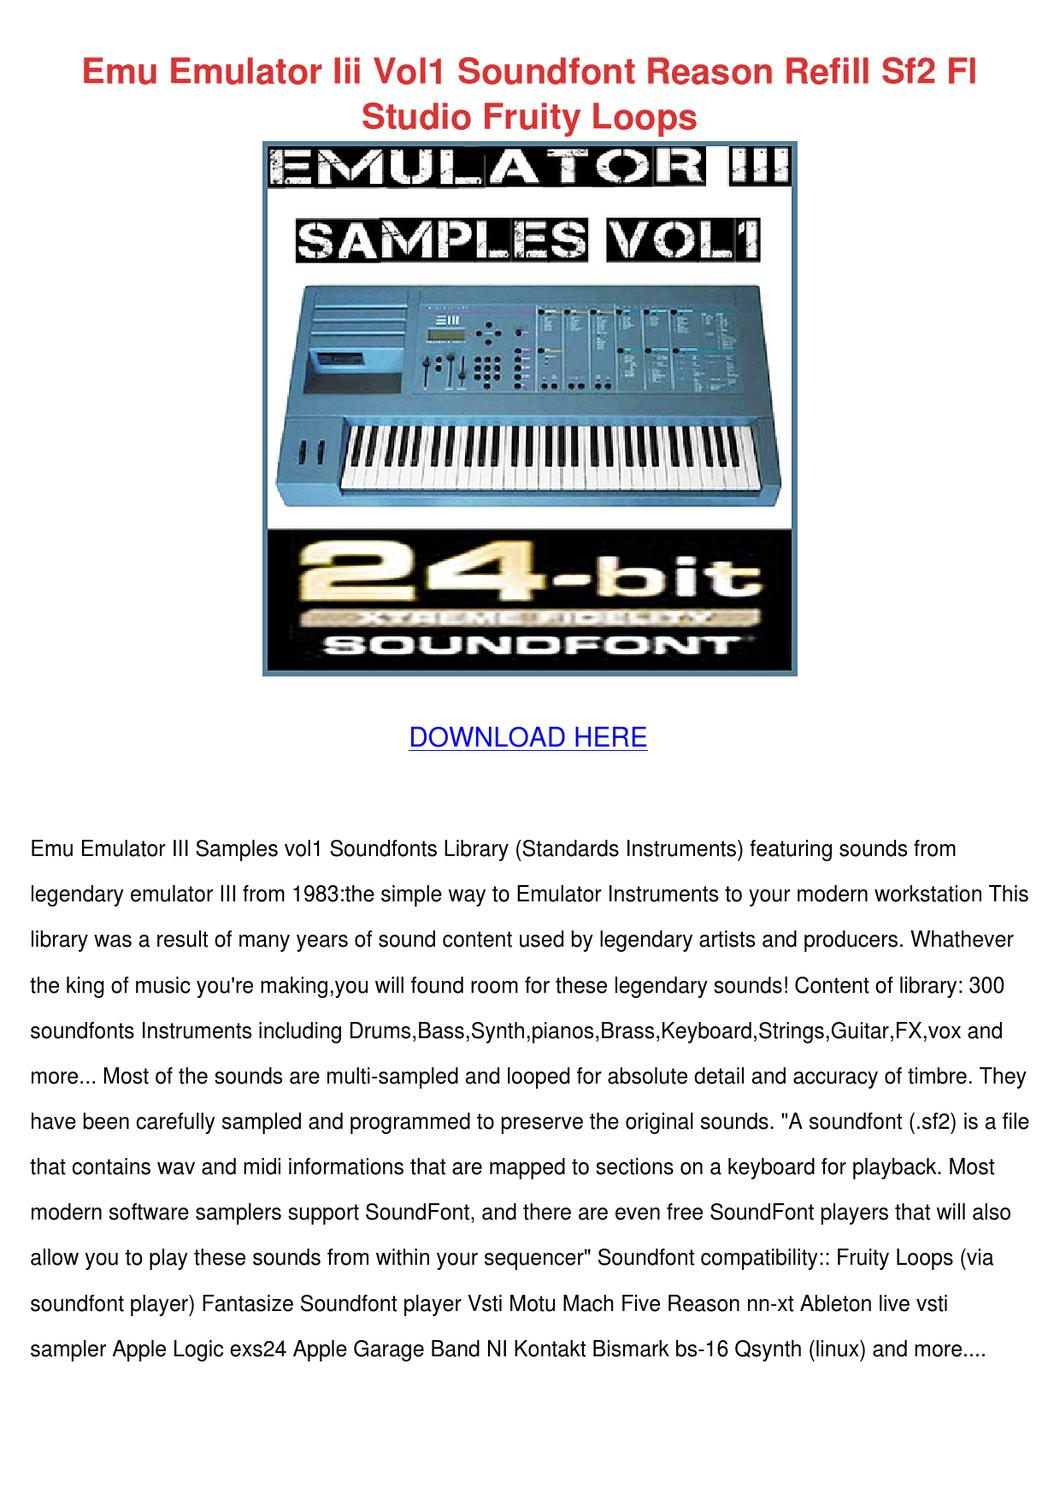 Emu Emulator Iii Vol1 Soundfont Reason Refill by Alise Neveu - issuu